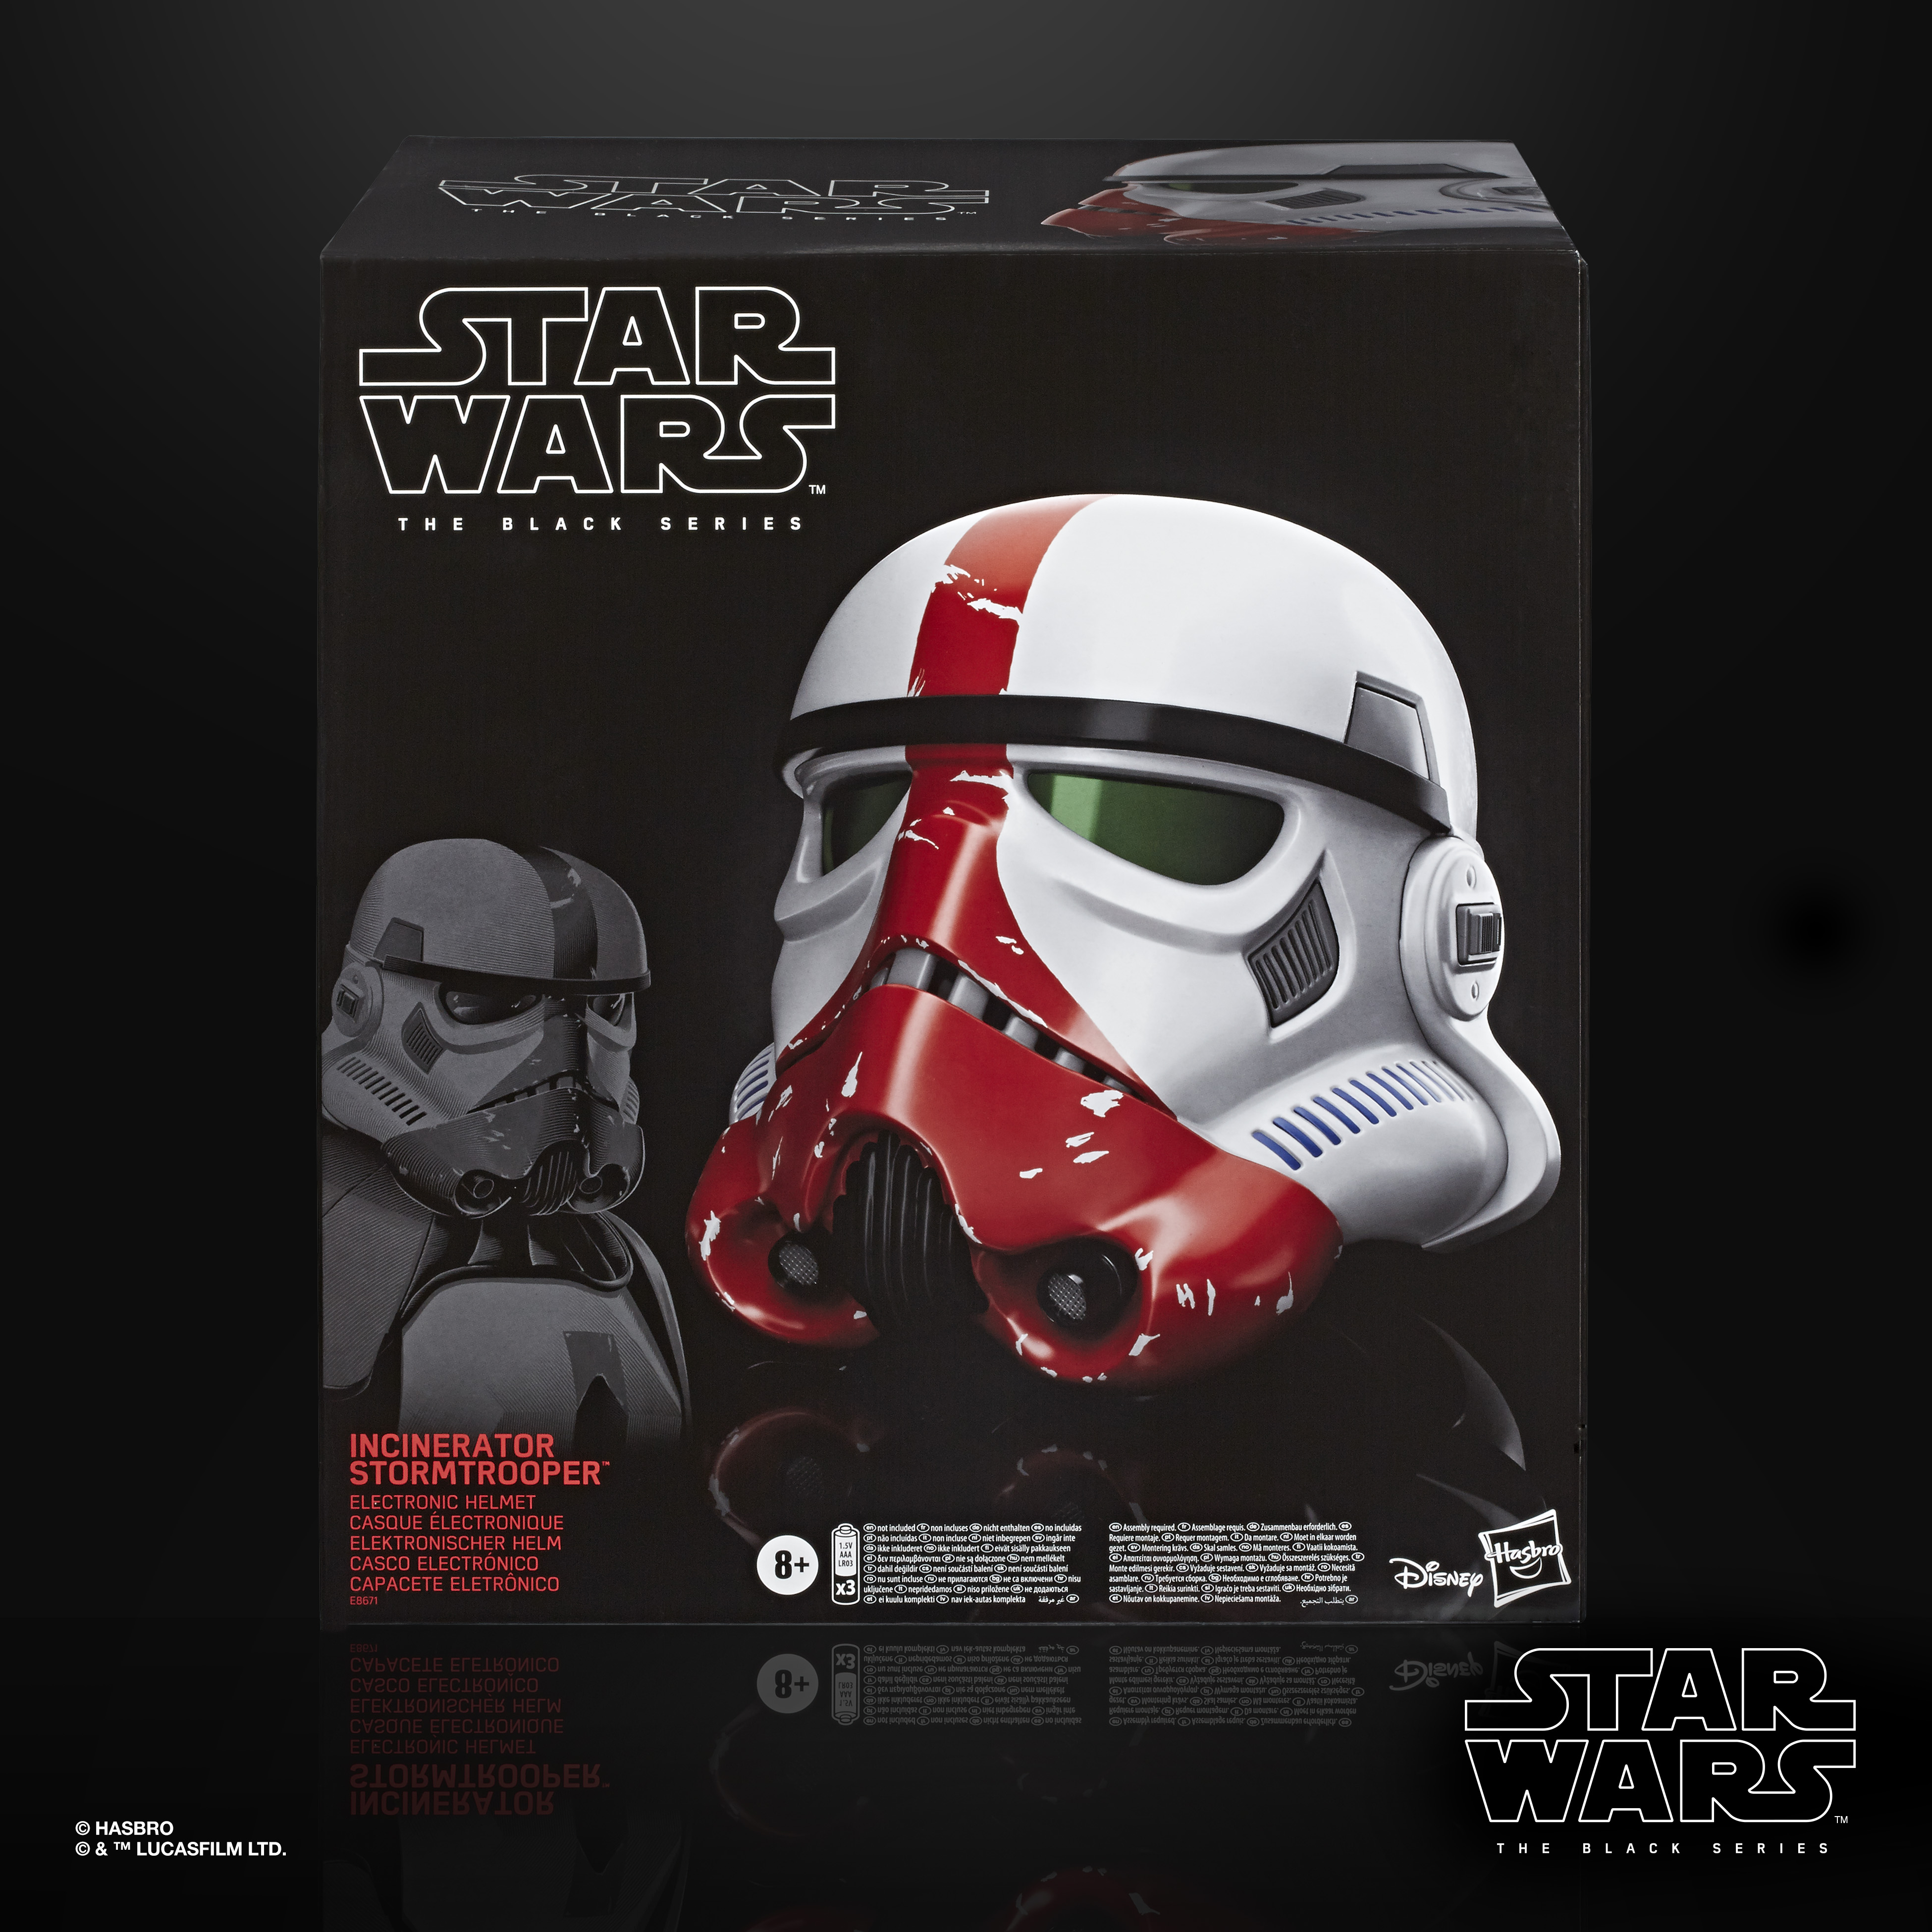 STAR WARS THE BLACK SERIES INCINERATOR STORMTROOPER PREMIUM ELECTRONIC HELMET